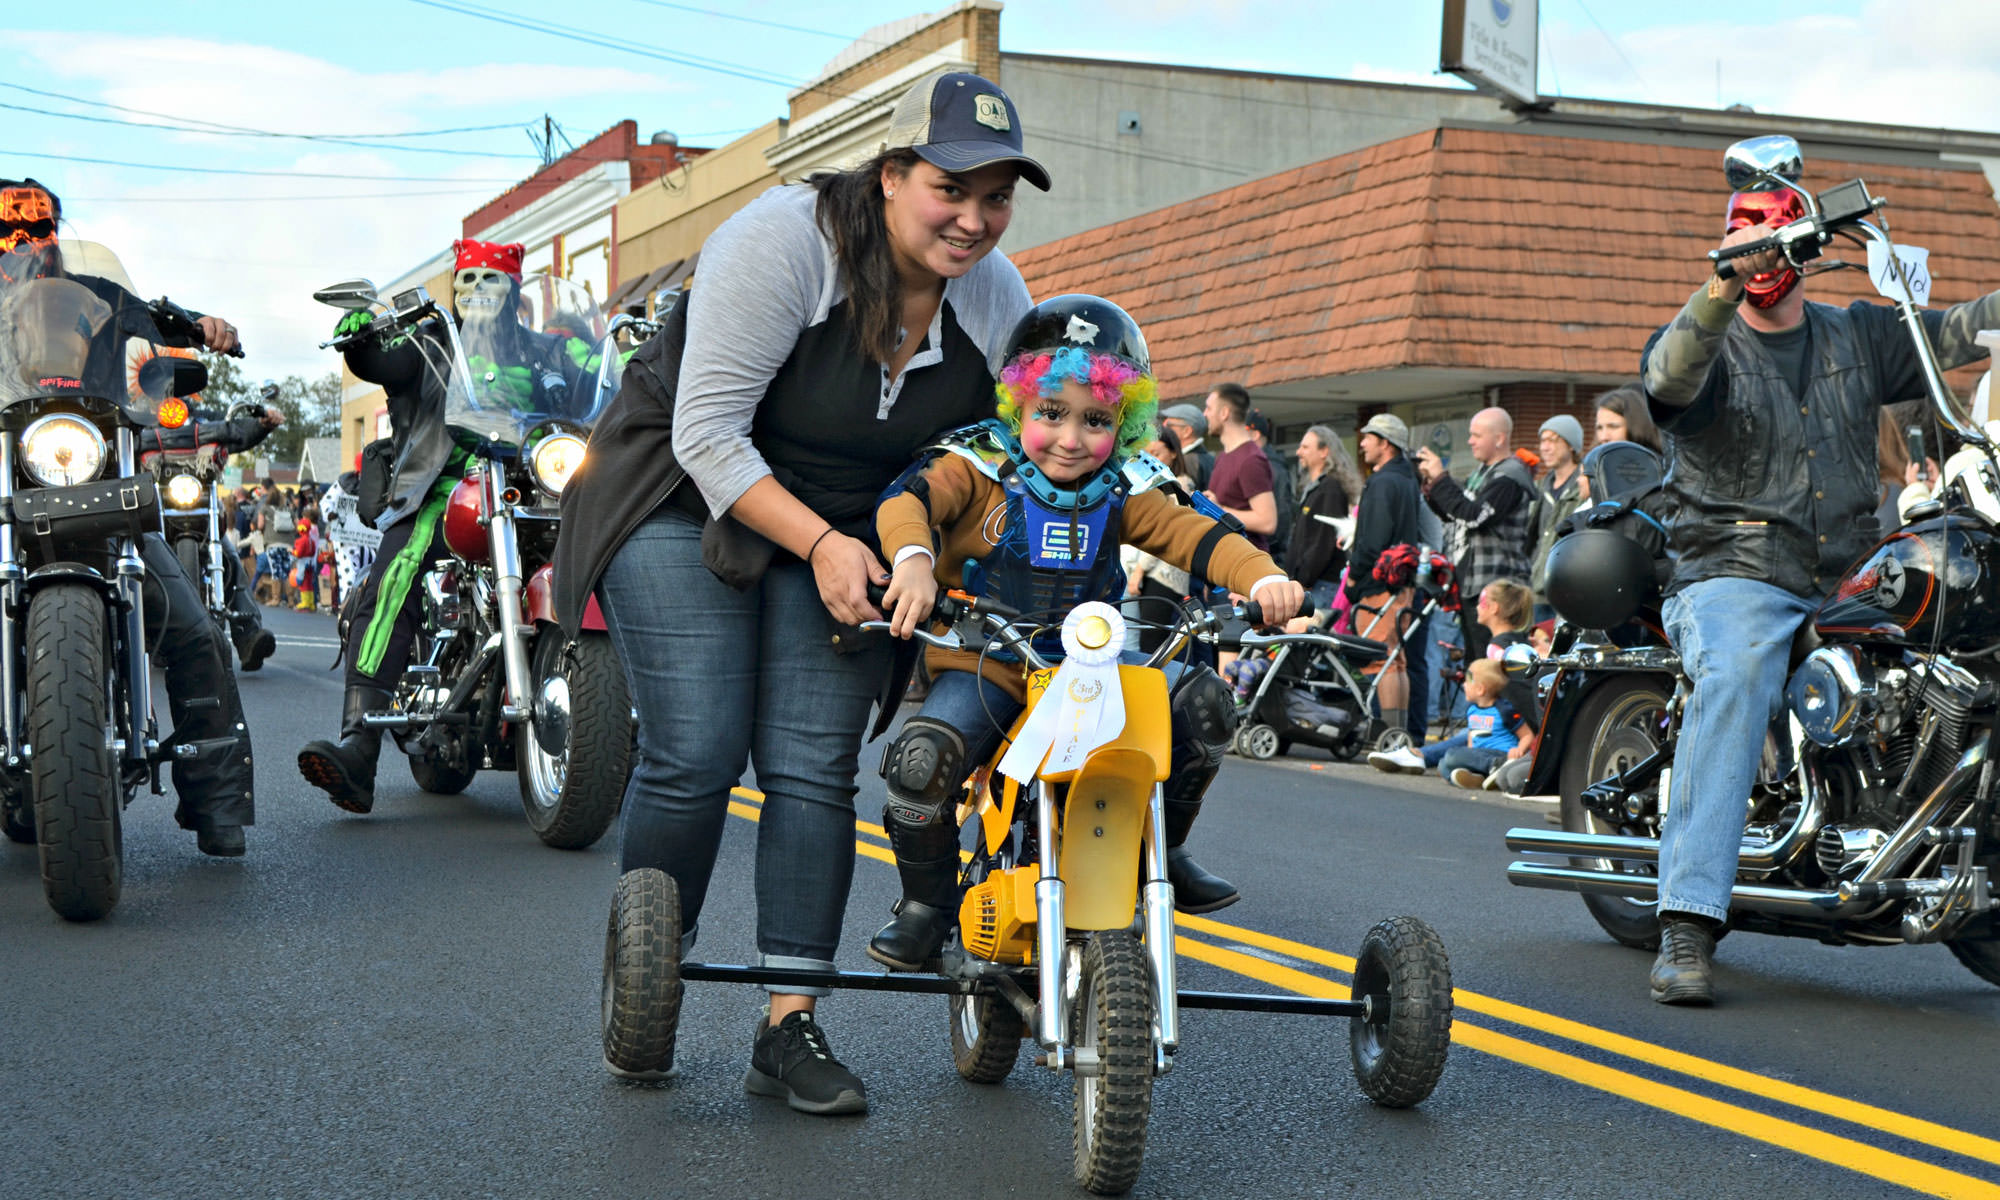 A child wearing a wig with face paint leads a motorcycle parade on her tricycle.